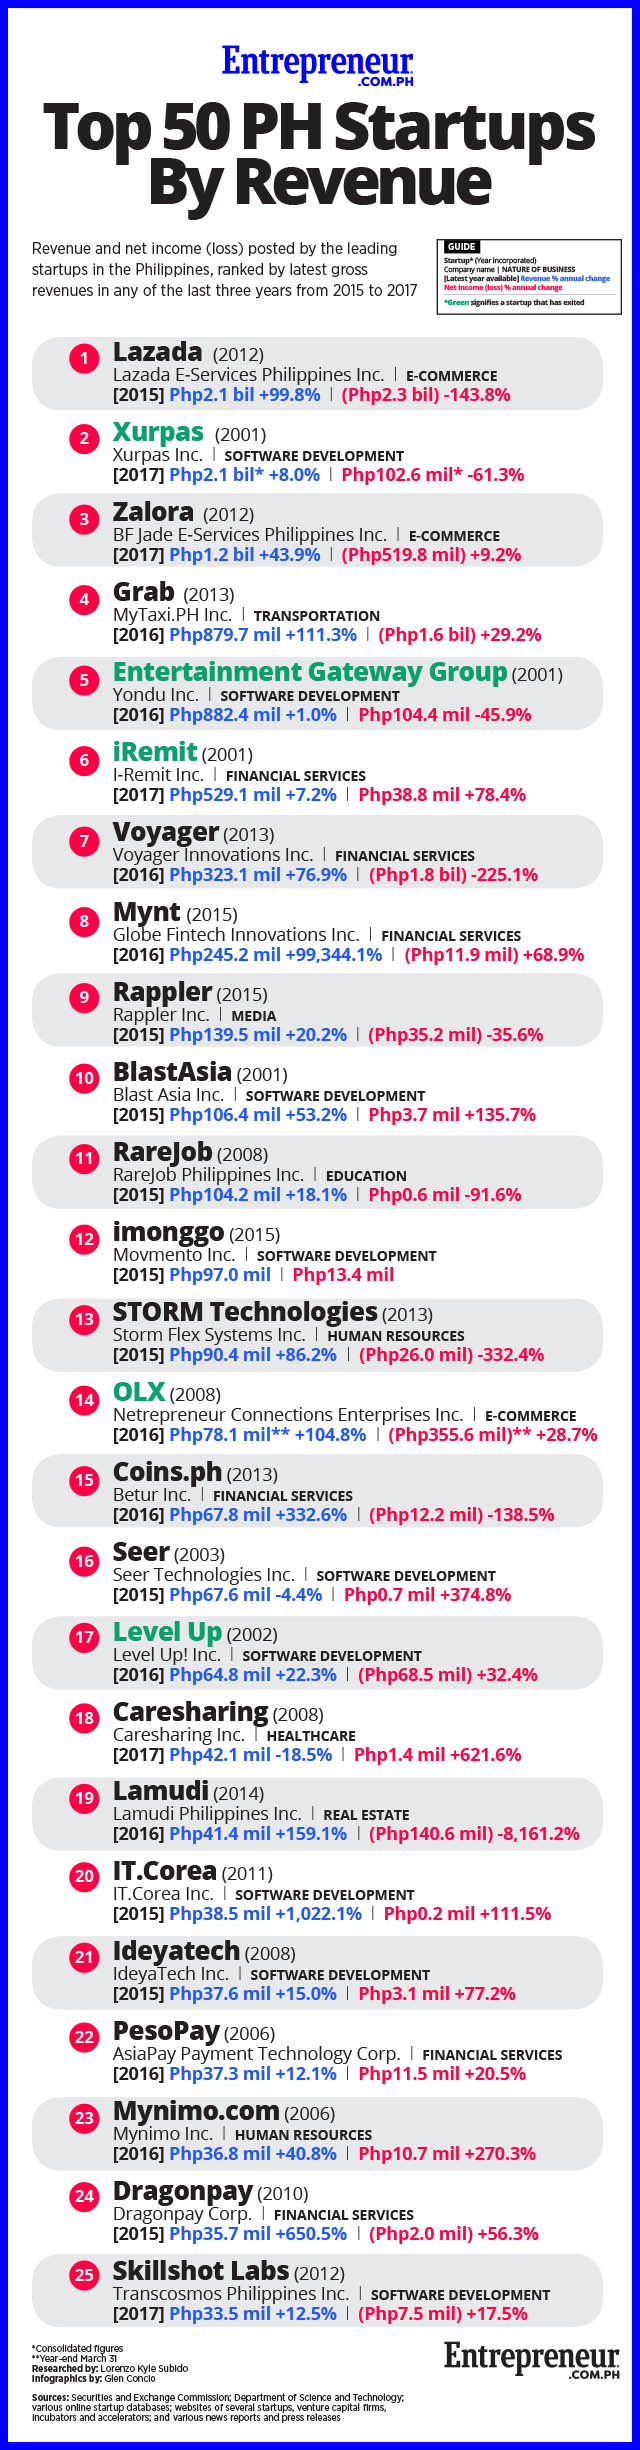 Who Are the Top 50 Revenue-Generating Startups in the Philippines?